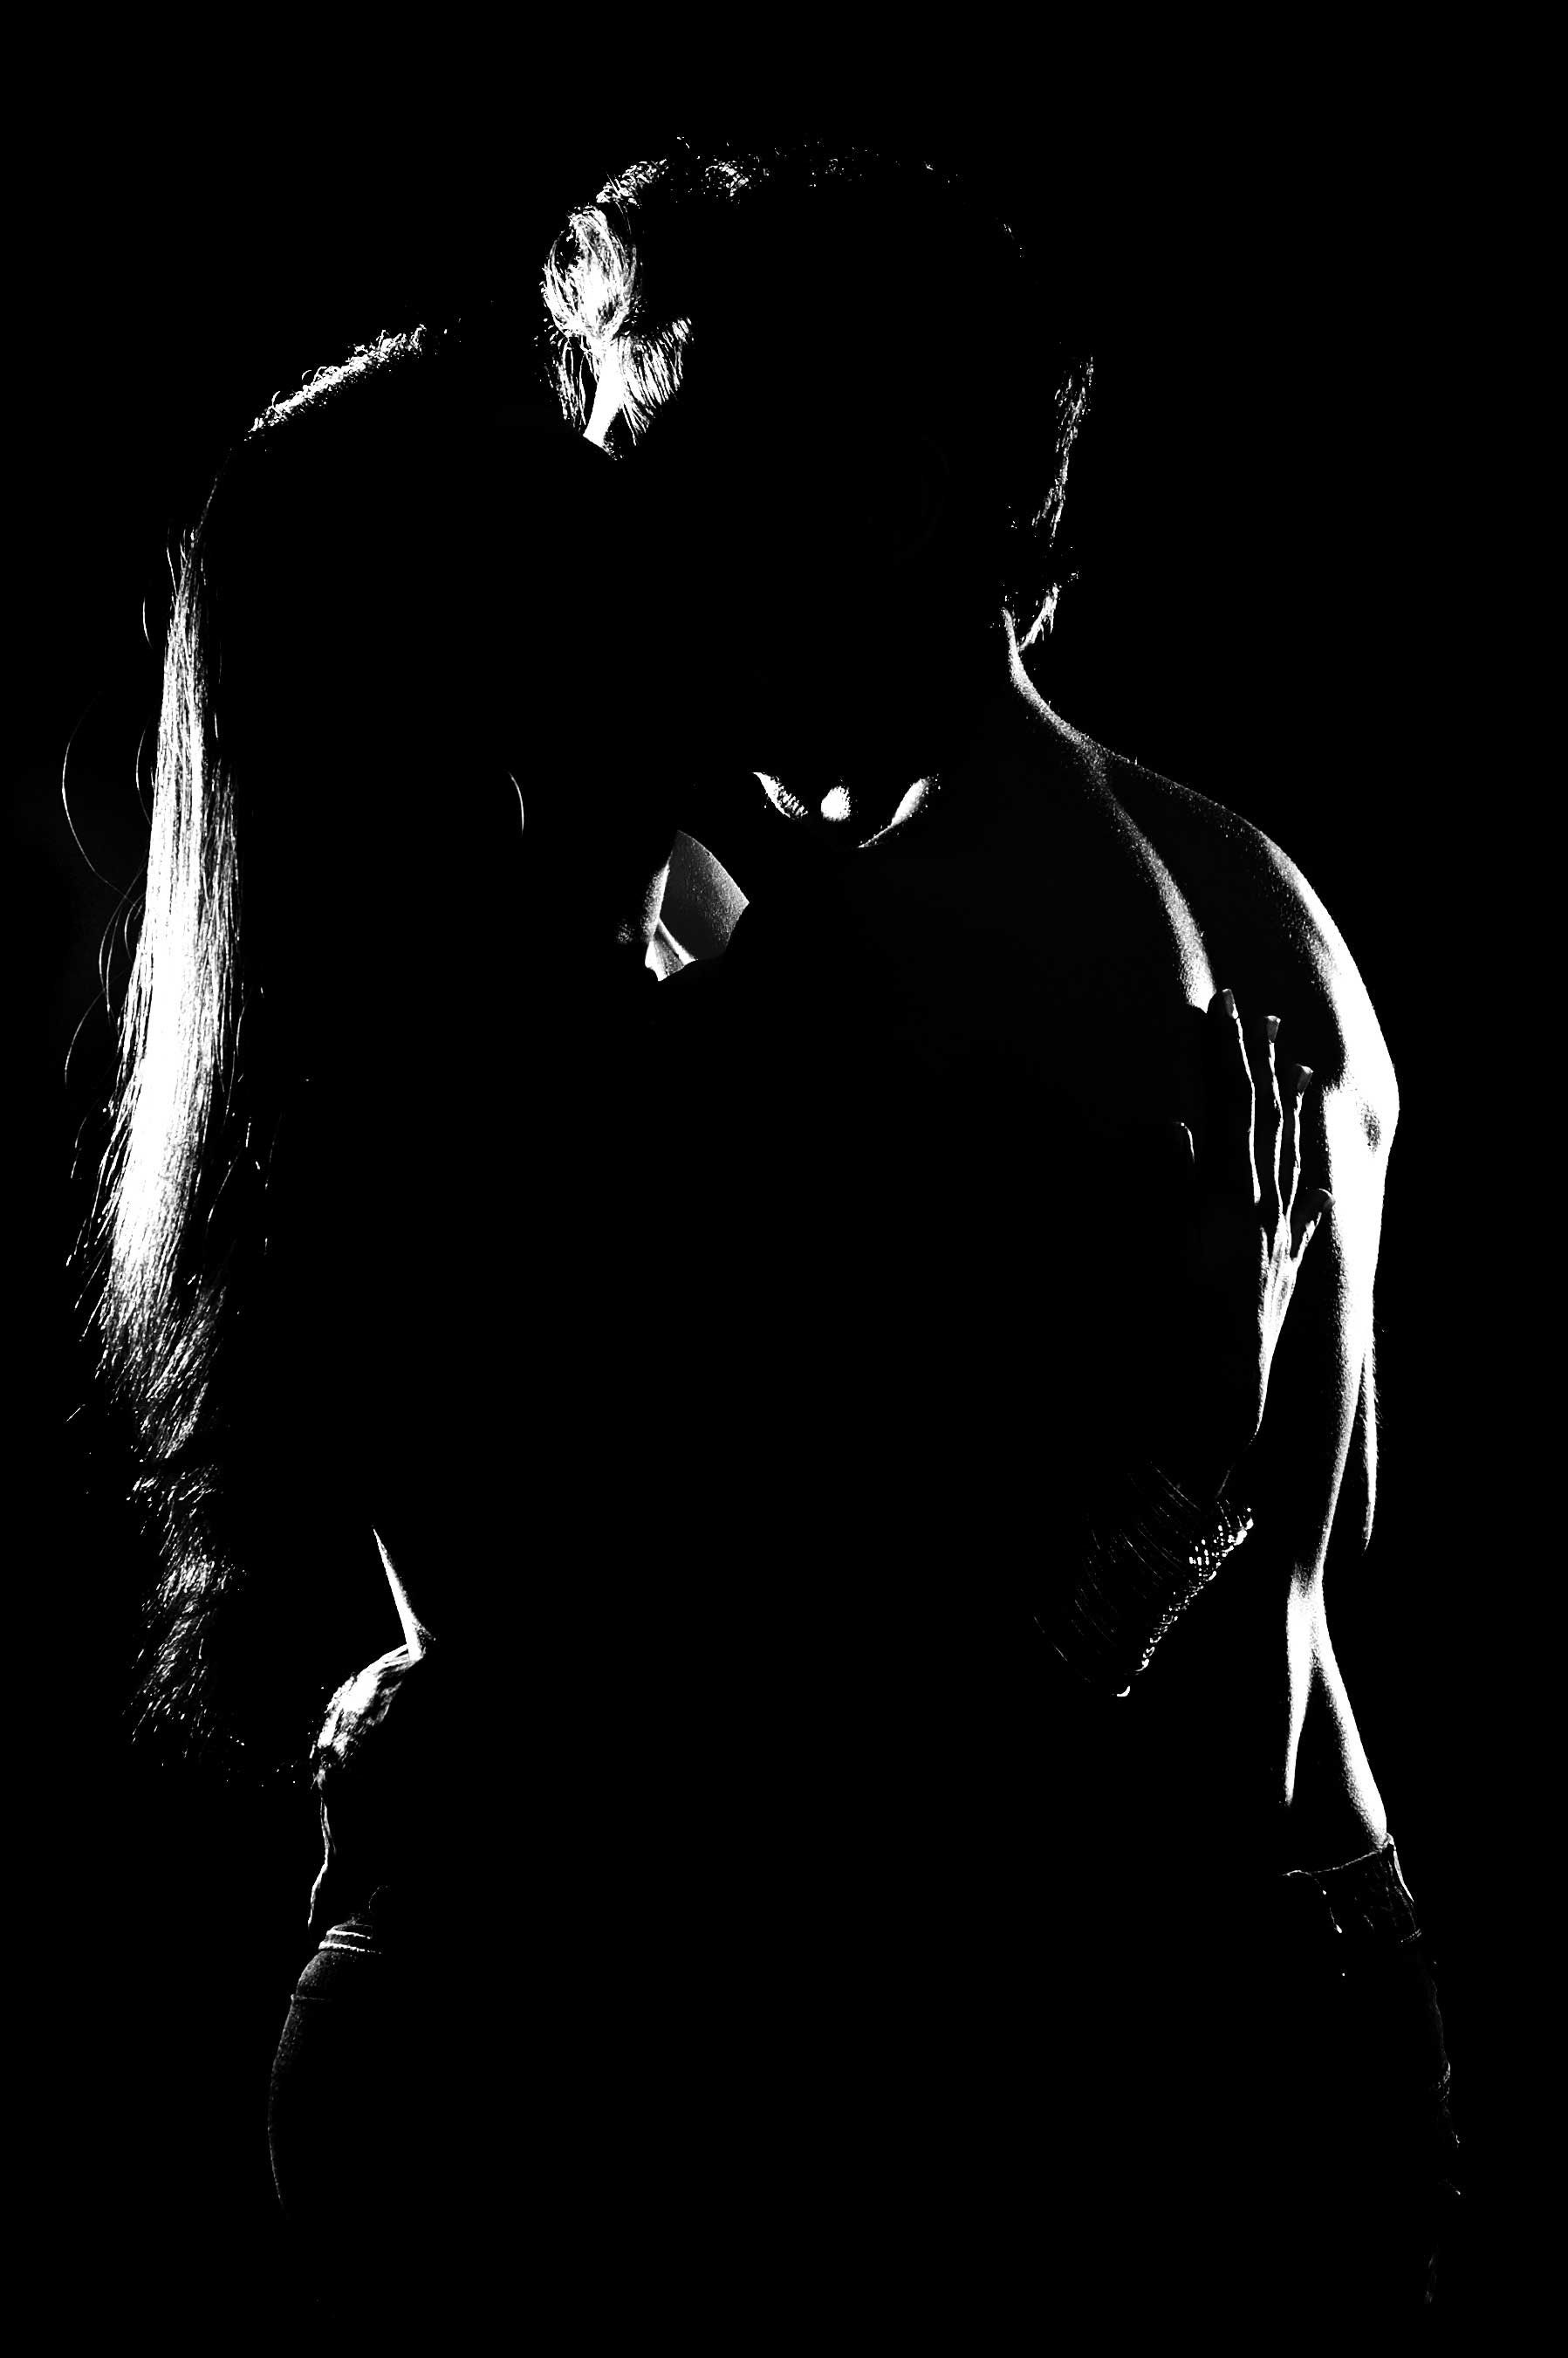 Hot Couple Wallpaper Theme Pictures Of Love Couple Love Wallpaper Kissing Silhouette